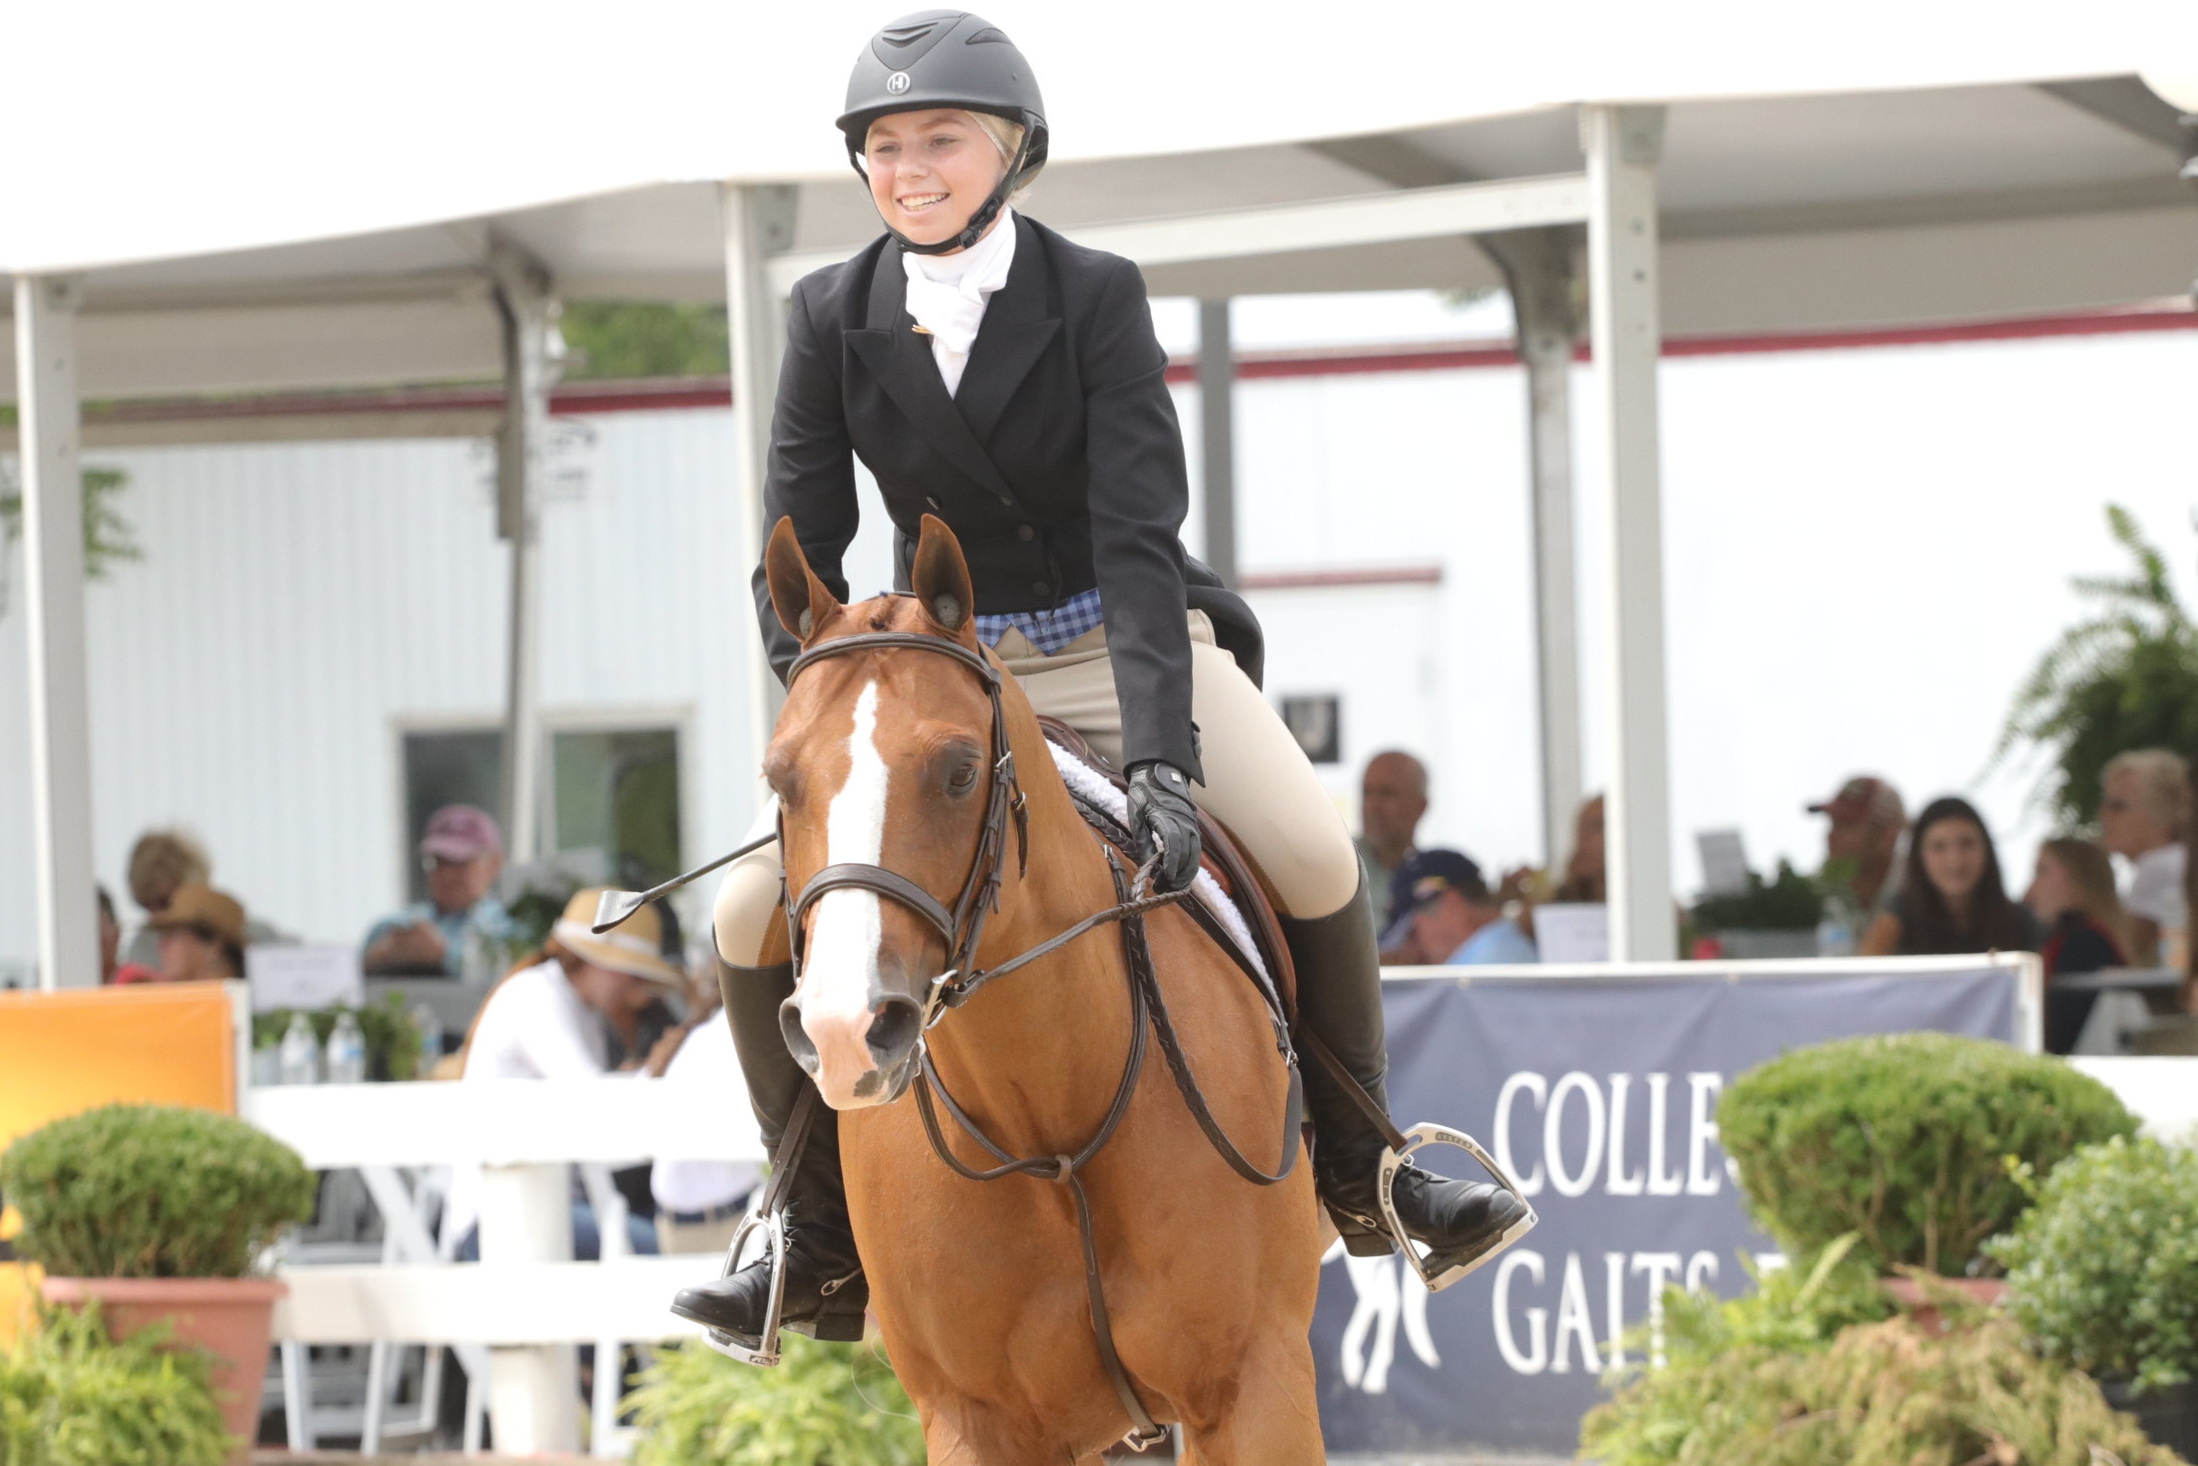 Emma and Pardon My Zipper (Zippy) competed in their third and final pony final this year in Lexington, KY.